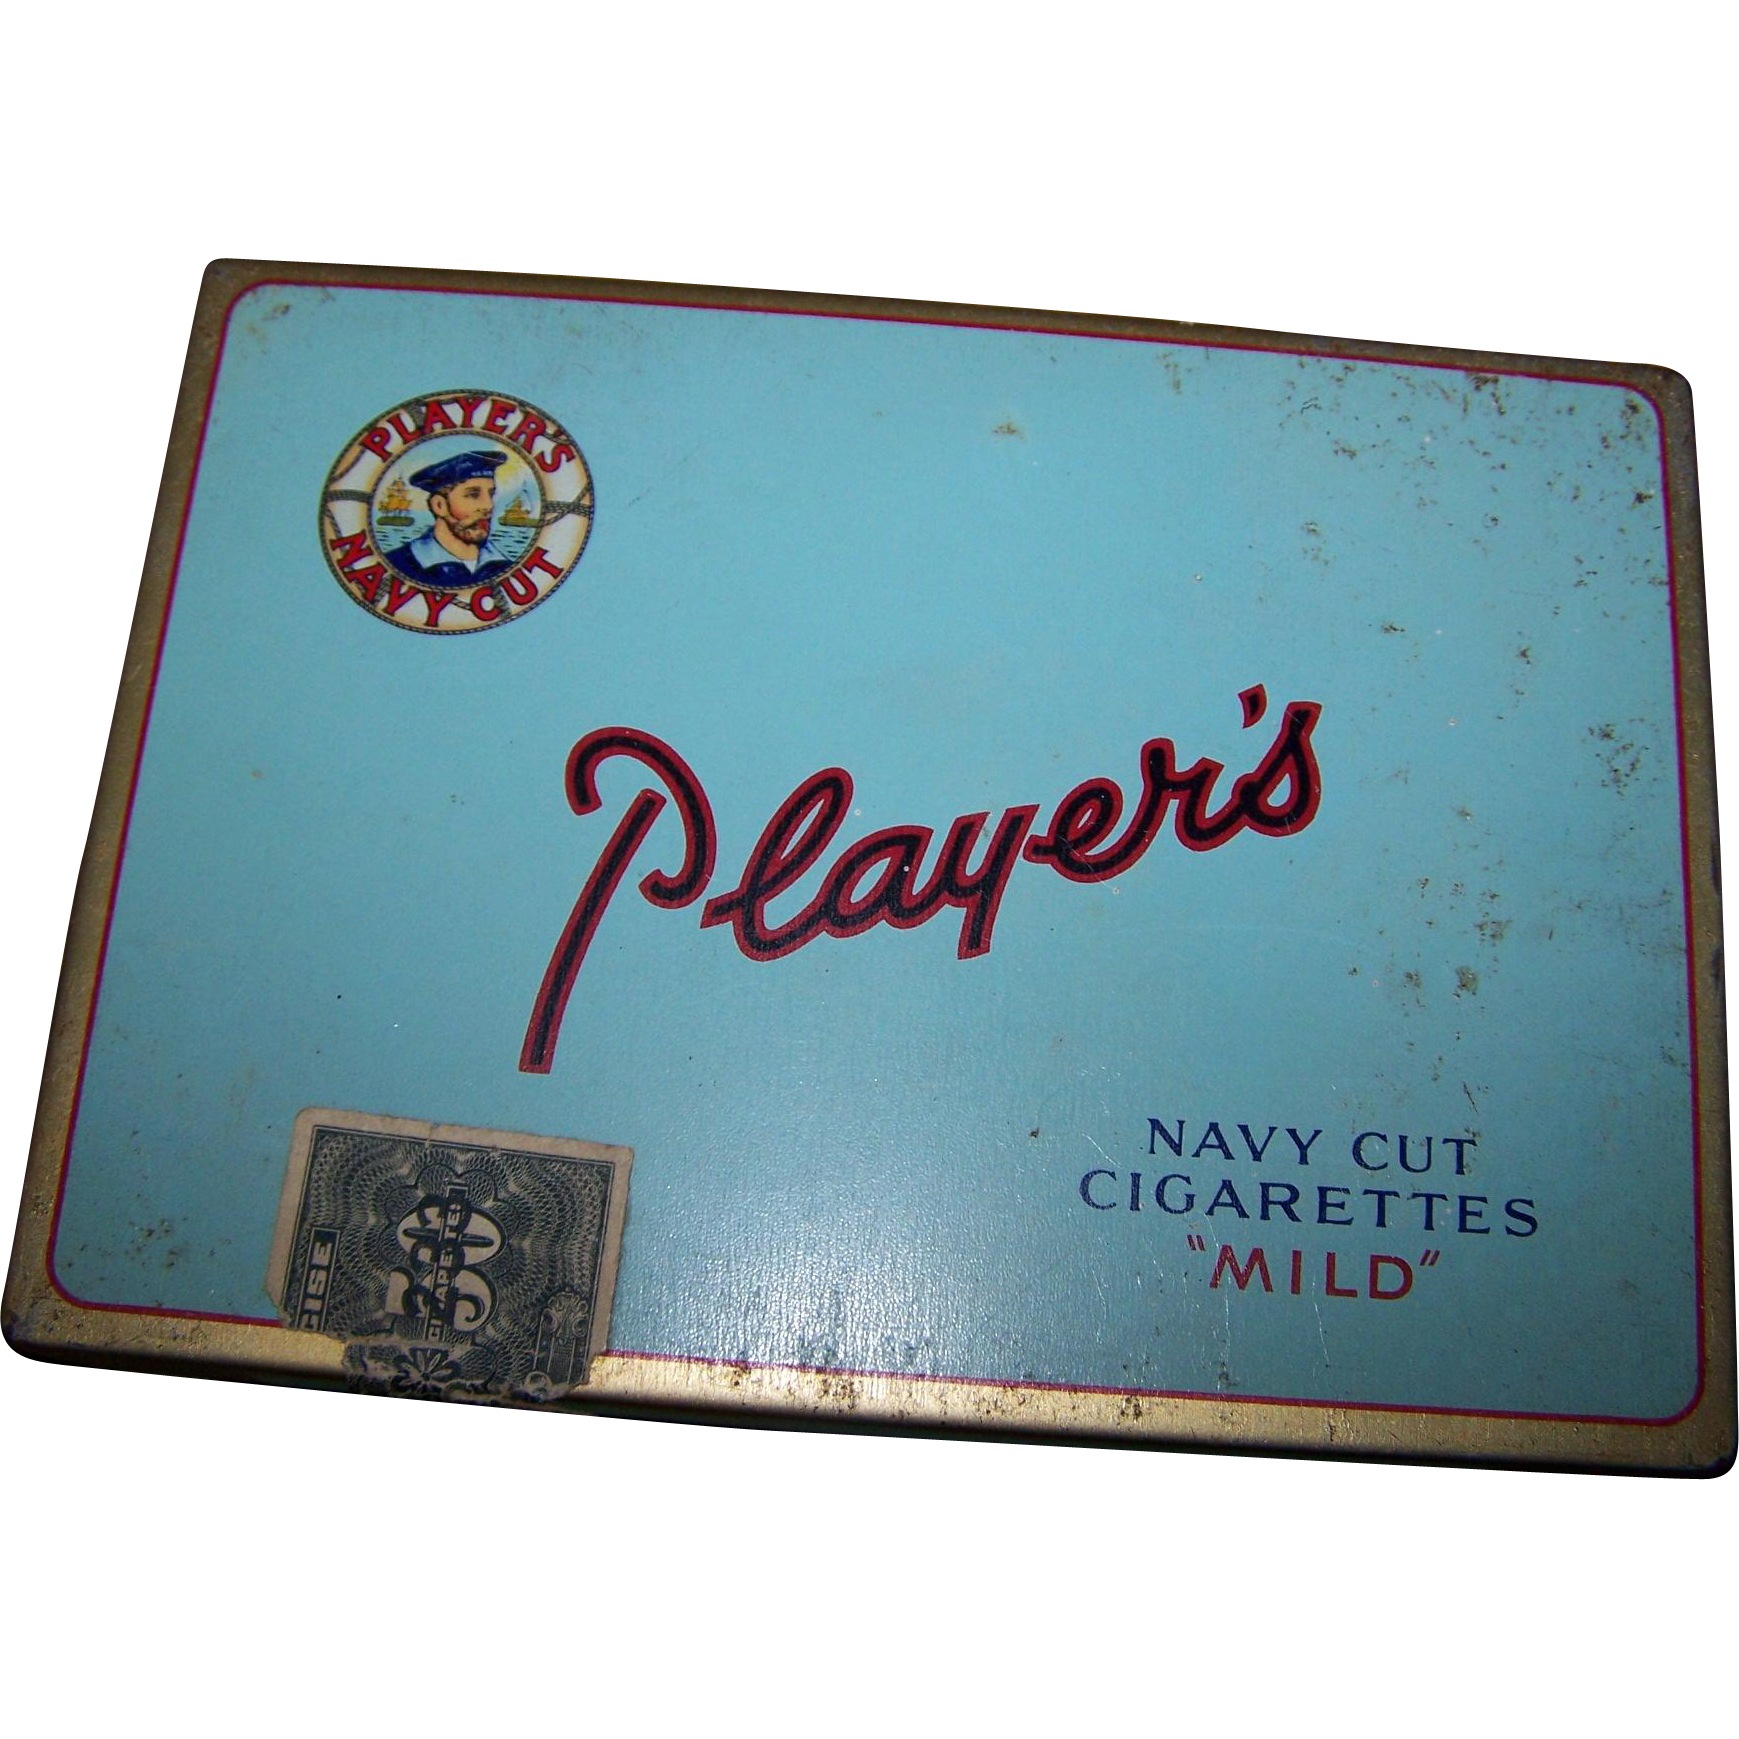 Vintage Tin Litho Tobacco Advetising Player's Navy Cut Cigarette Tin Box